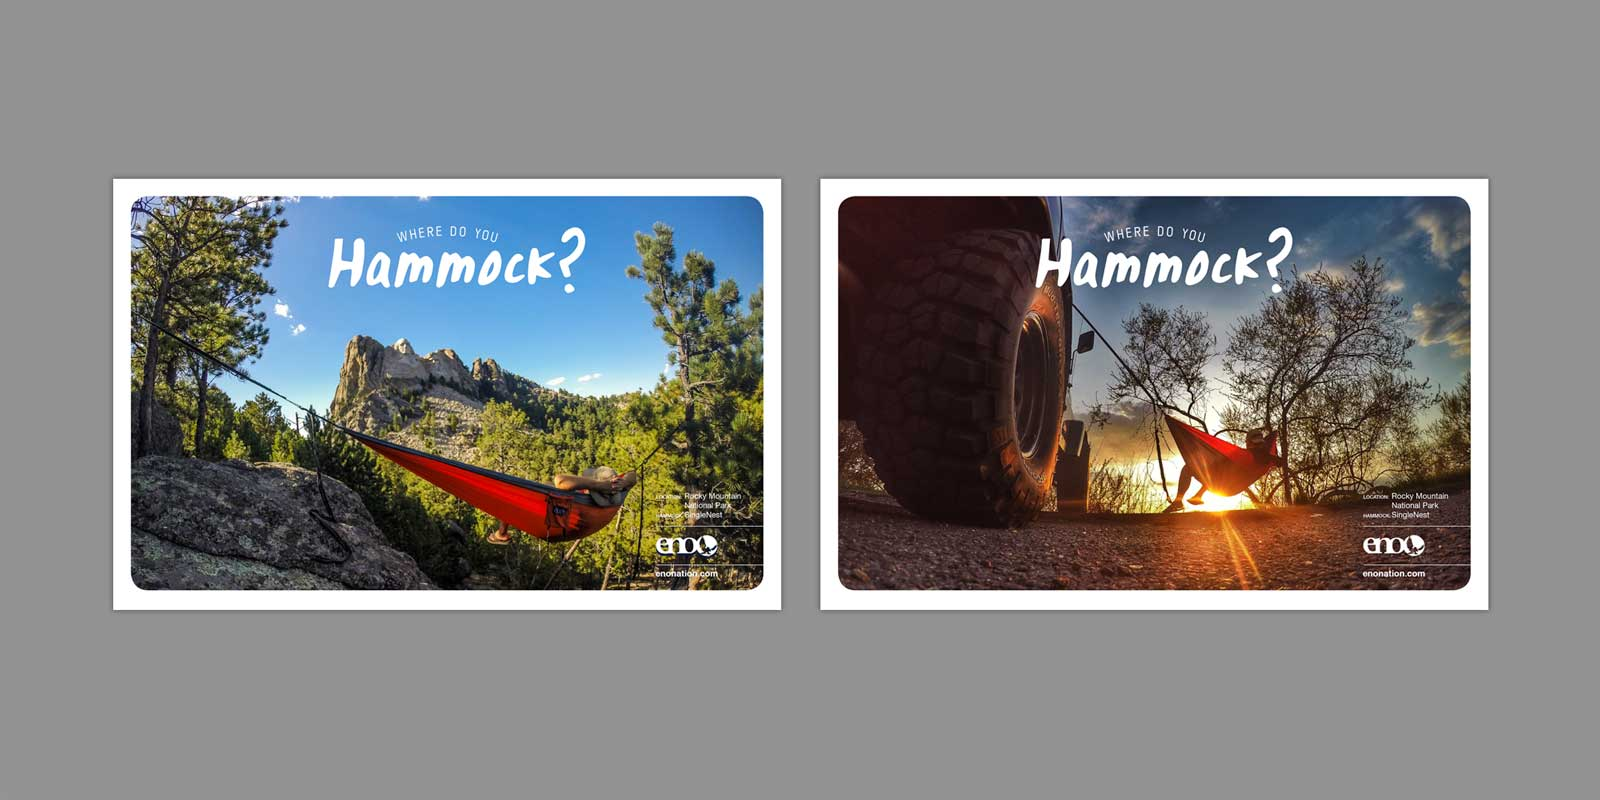 Two Eno Hammocks ads with Mount Rushmore in background. One ad with hammock attached to a Jeep Wrangler.